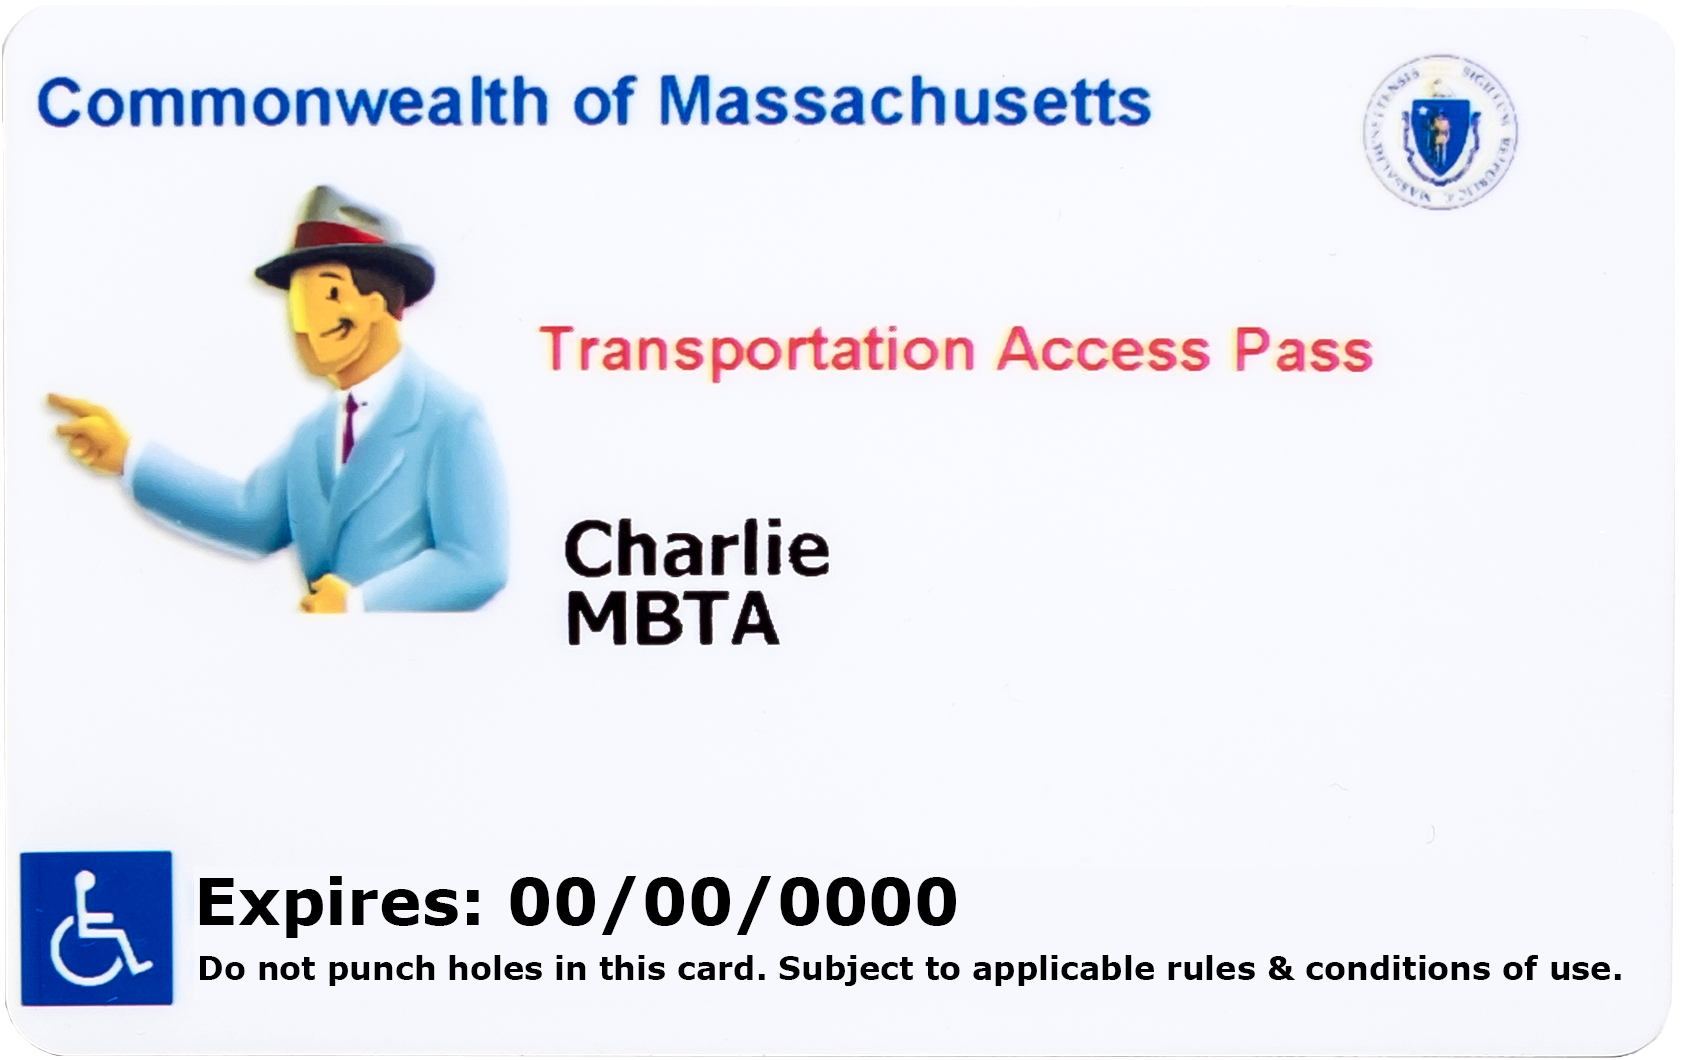 The revised Transportation Access Card as of July 2020